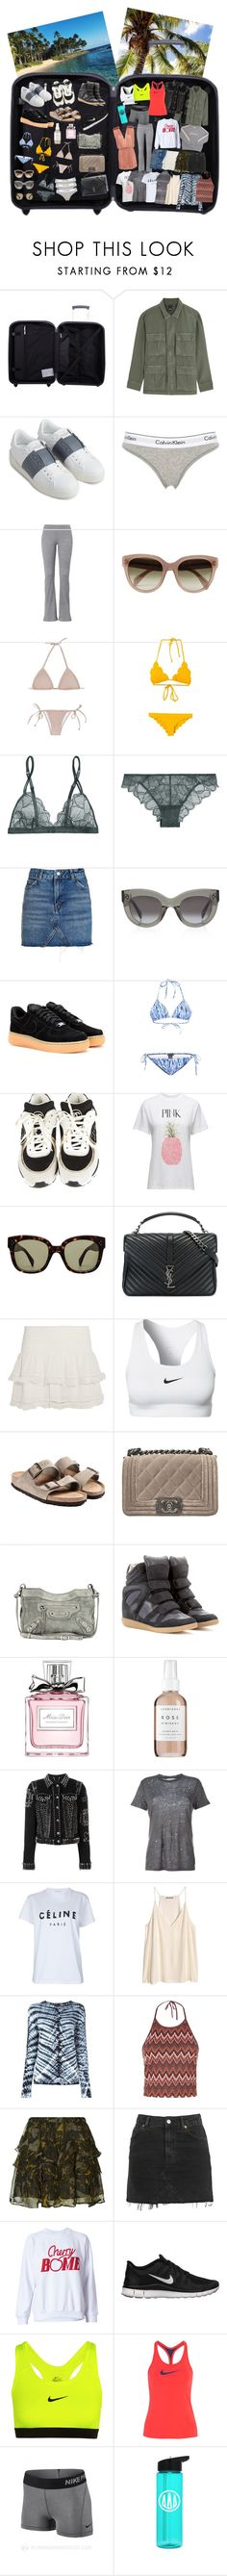 """""""In my suitcase!"""" by maya-isako ❤ liked on Polyvore featuring Tripp, Citizens of Humanity, Valentino, Calvin Klein Underwear, CÉLINE, Marysia Swim, La Perla, Topshop, NIKE and Proenza Schouler"""